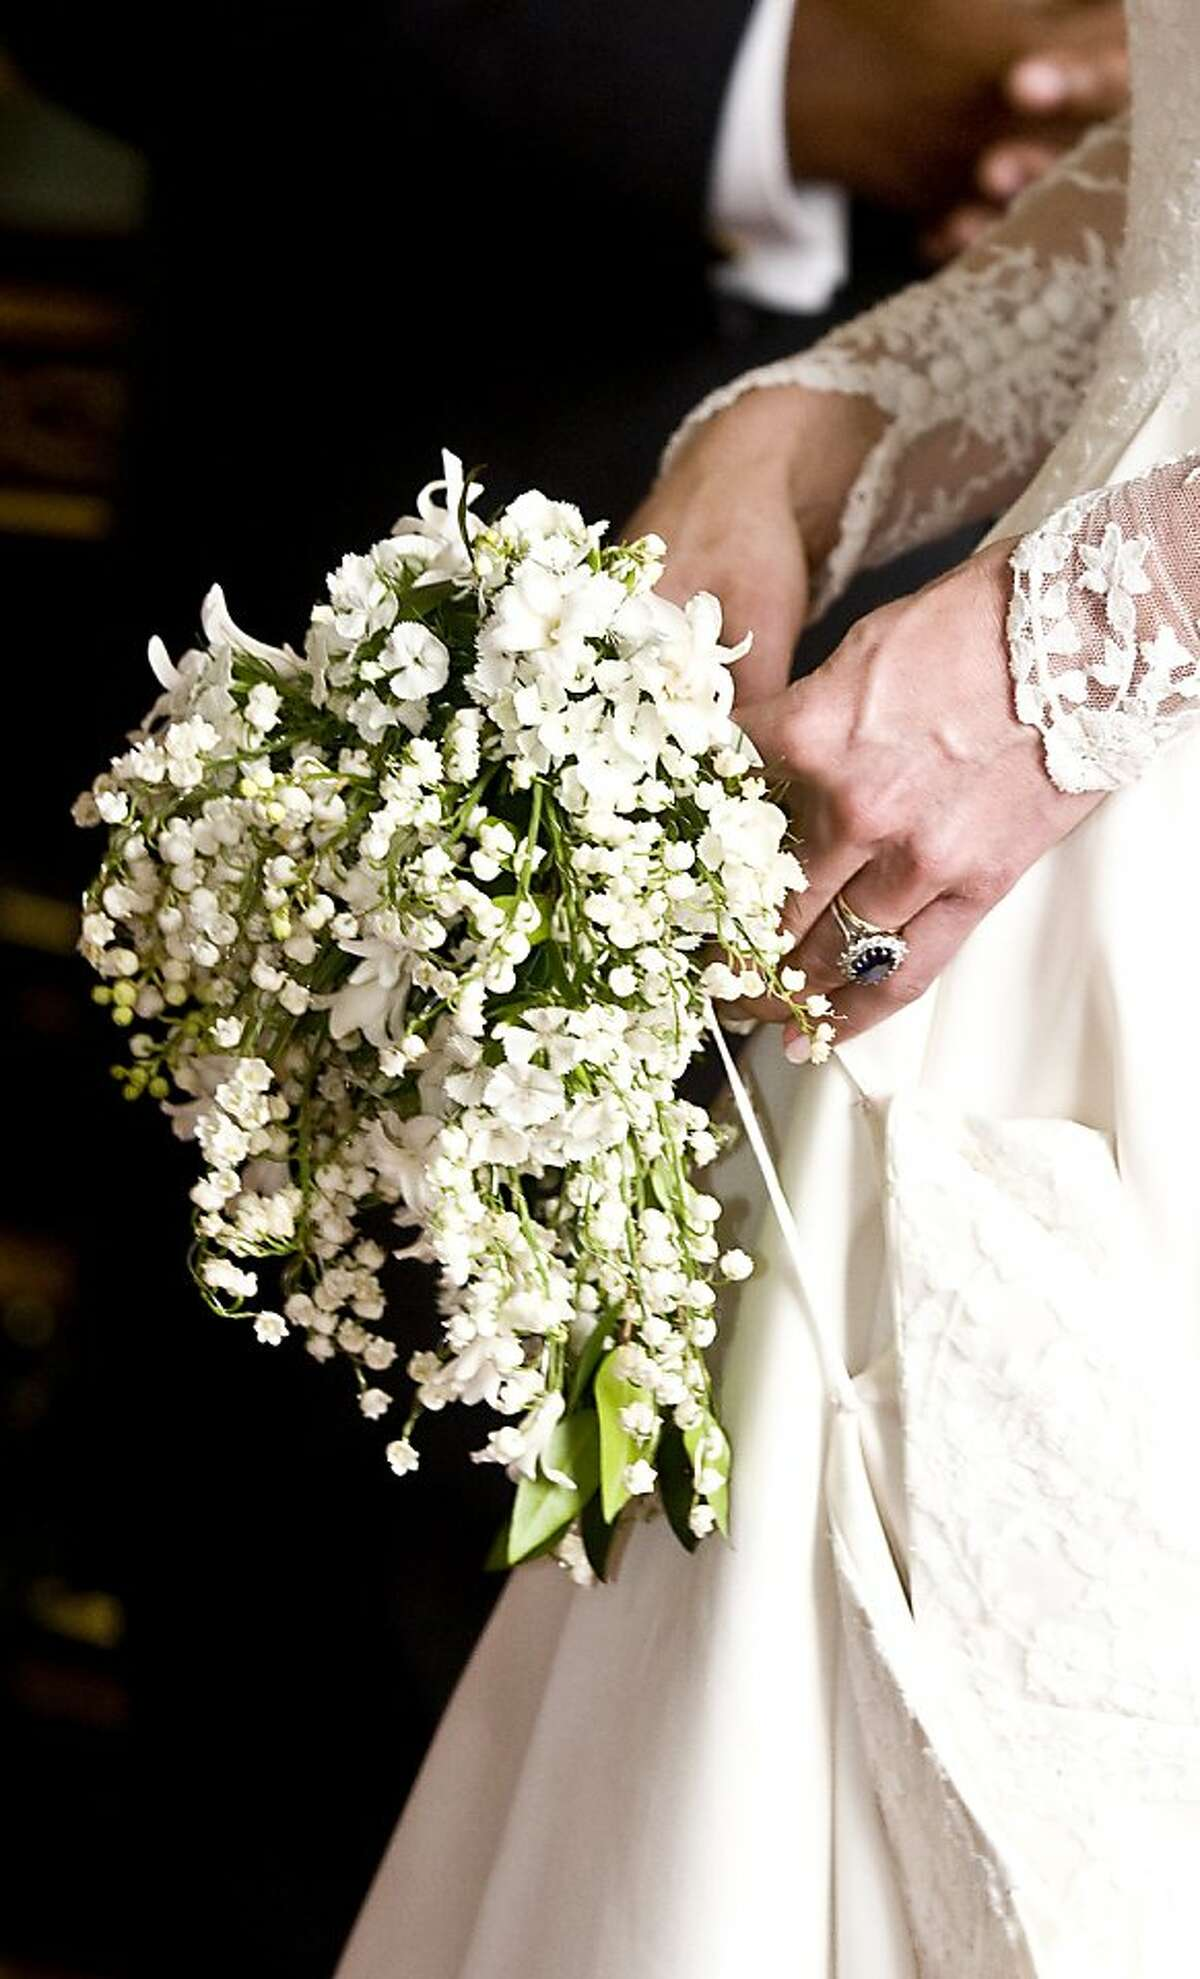 A picture shows the wedding and engagement rings worn by Kate Middleton, who has been given the title The Duchess of Cambridge as she holds the bouquet of flowers of her wedding, after meeting Governors-General and Prime Ministers at Buckingham Palace onApril 29, 2011 in London .